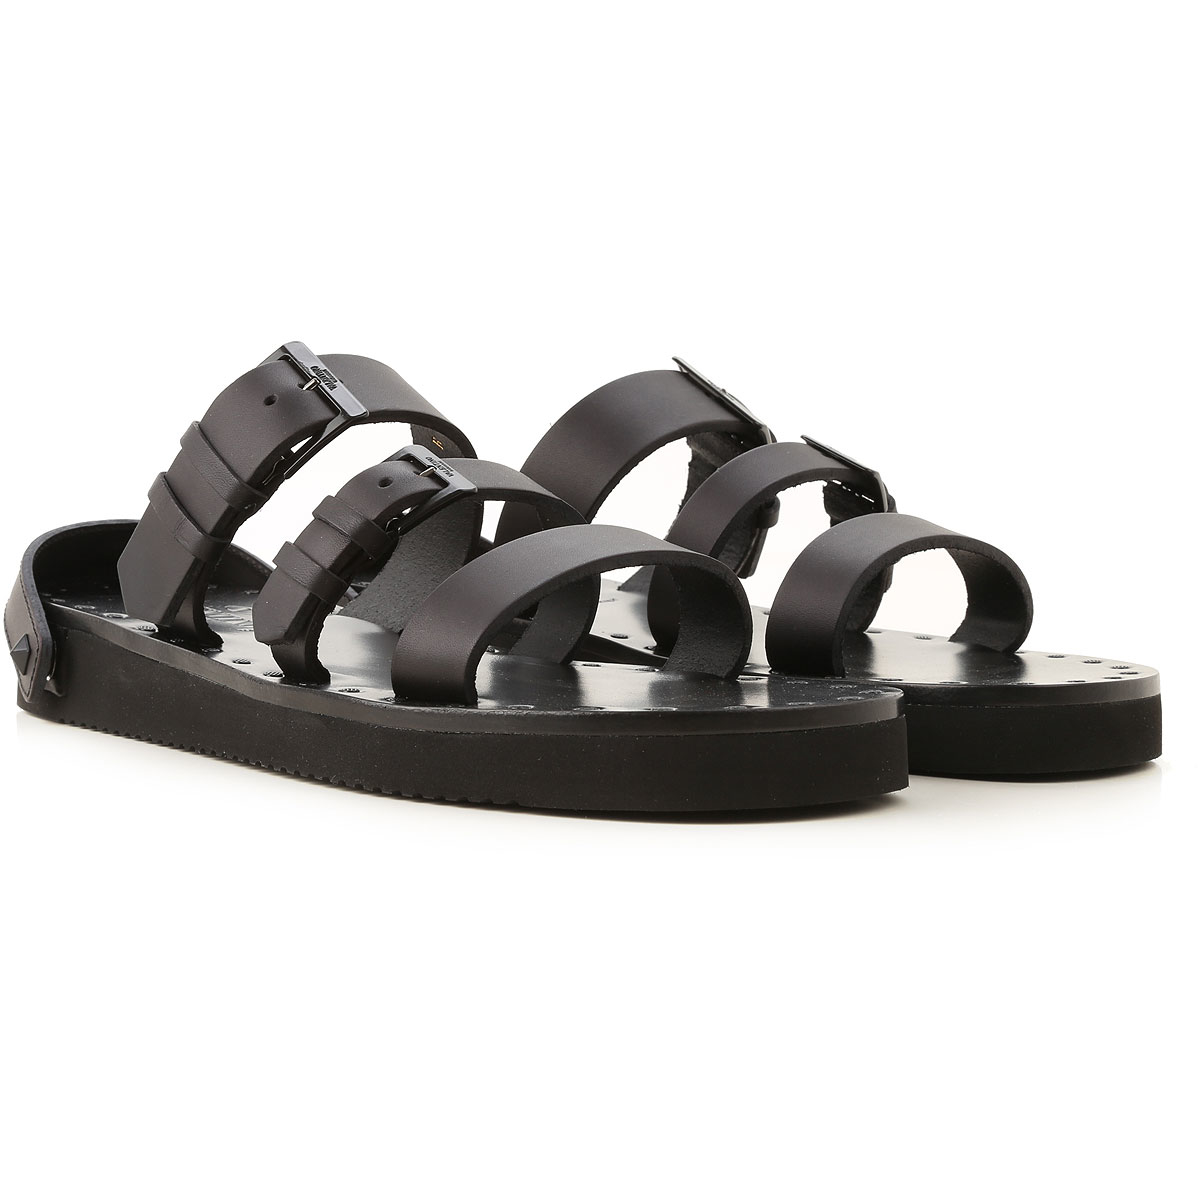 Valentino Garavani Sandals for Women Black Canada - GOOFASH - Womens SANDALS